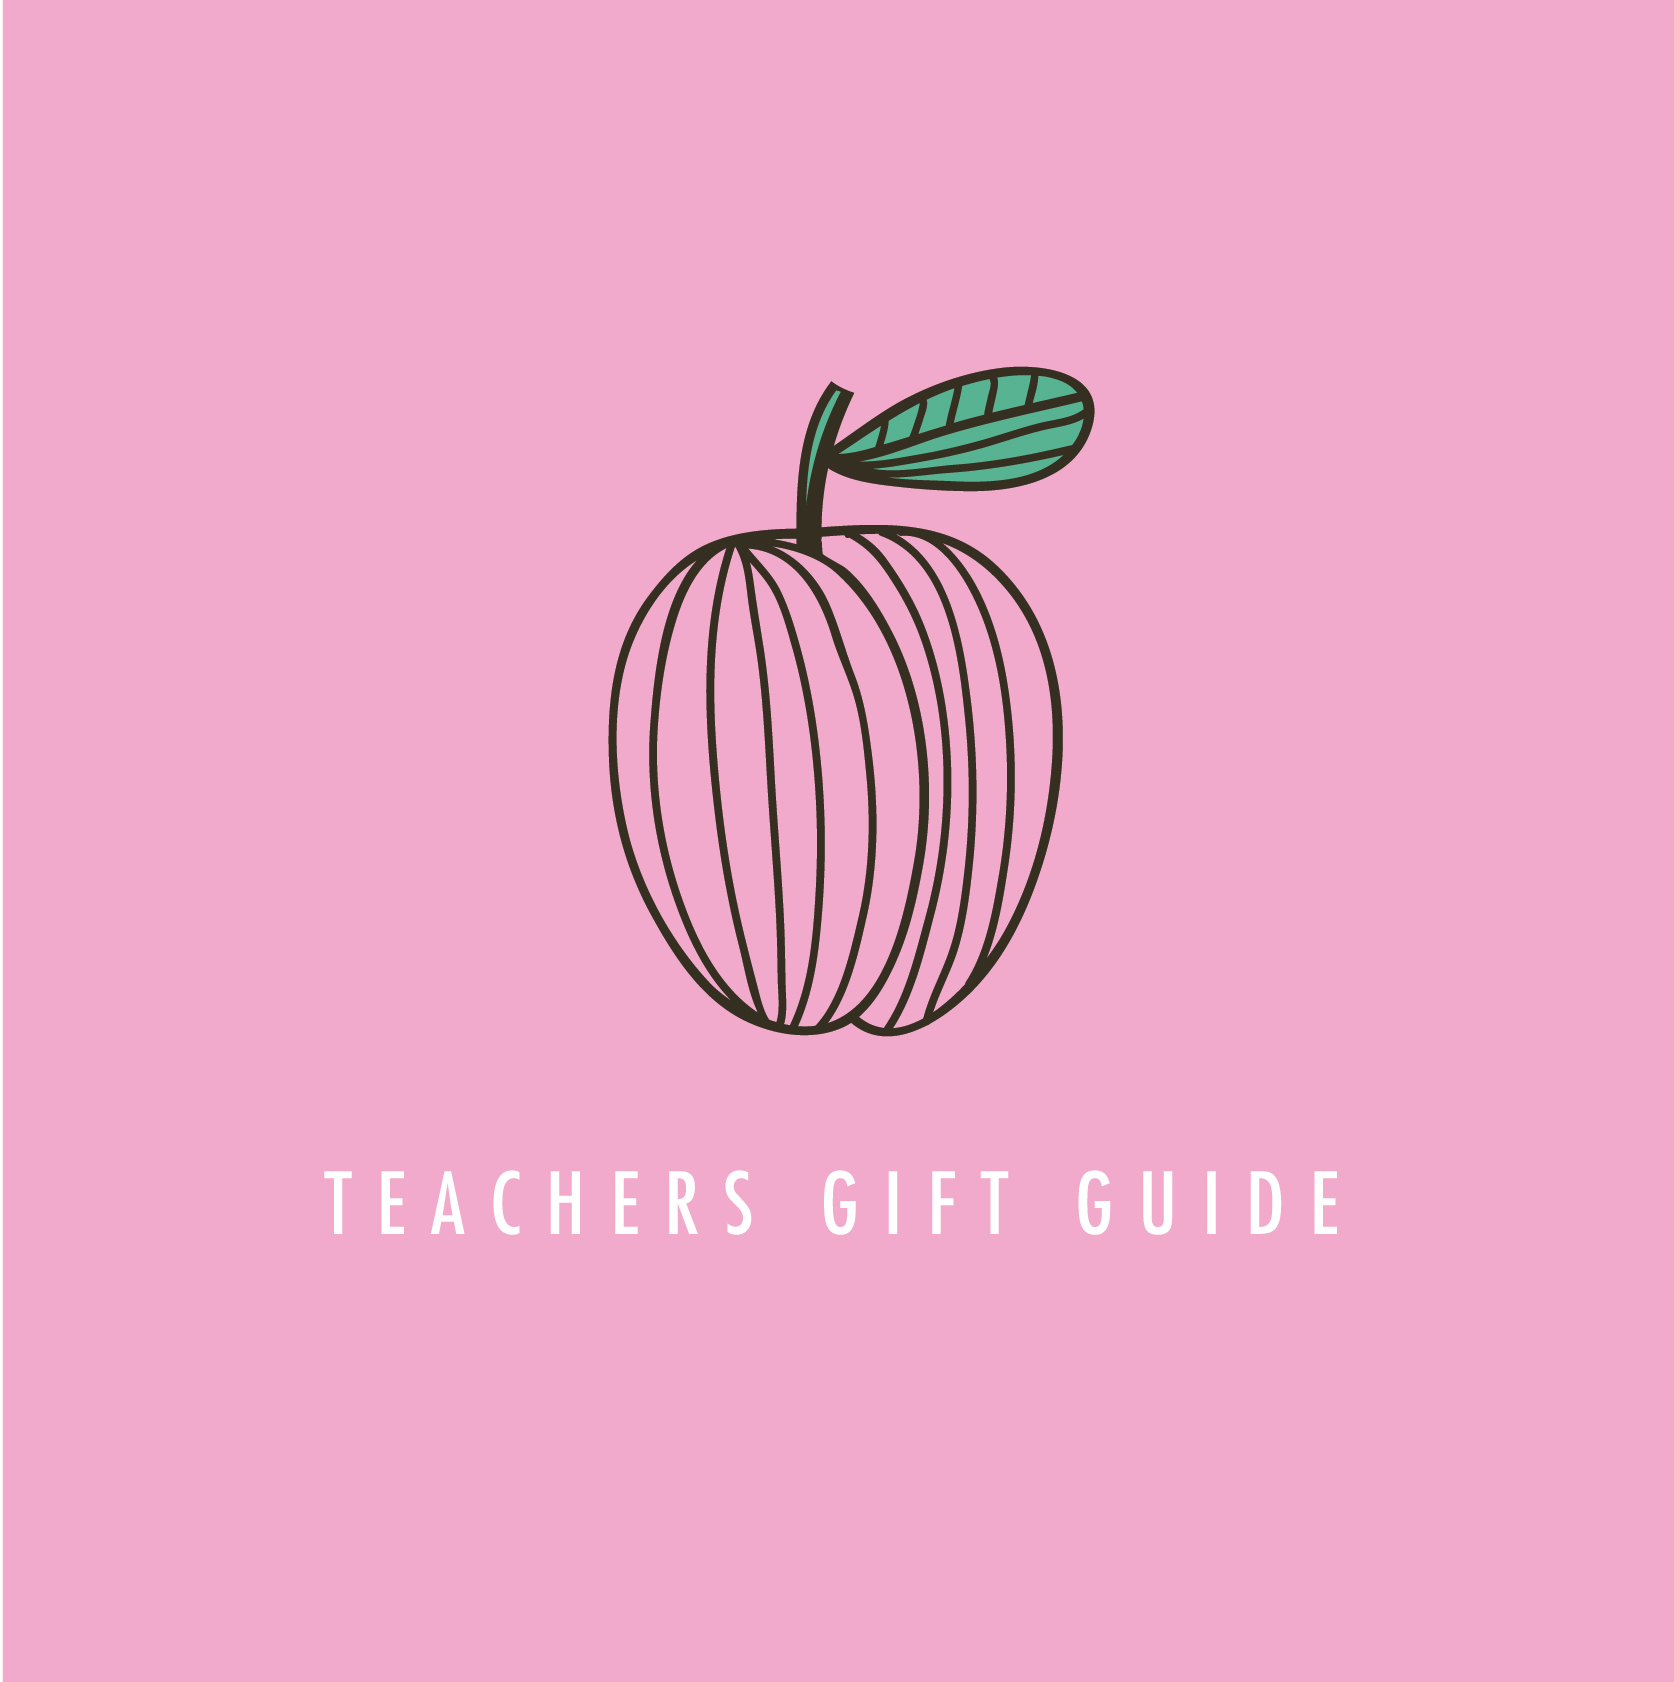 Teachers Gift Guide